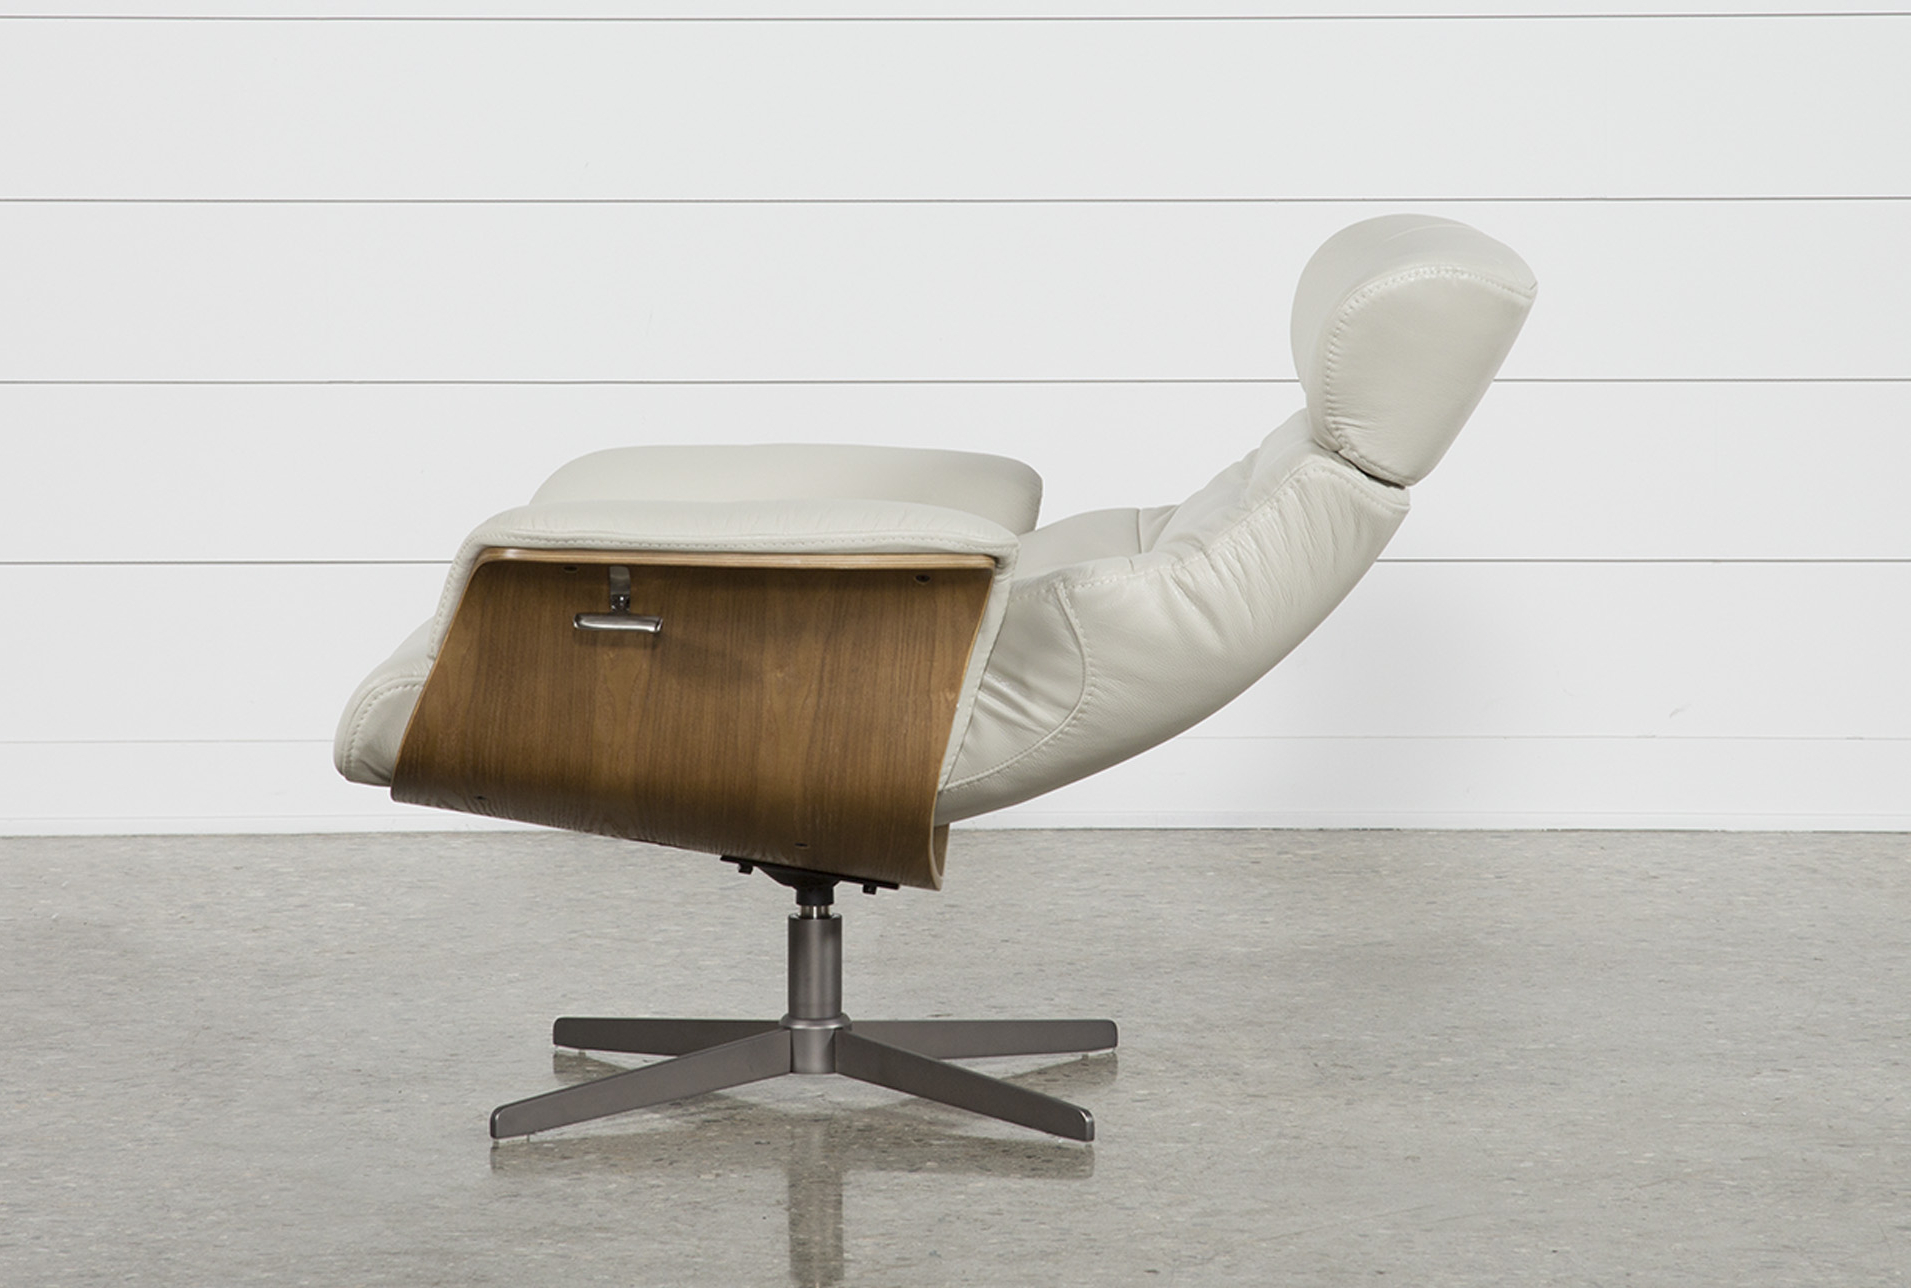 Amala Bone Leather Reclining Swivel Chairs In Latest Amala Bone Leather Reclining Swivel Chair (View 3 of 20)